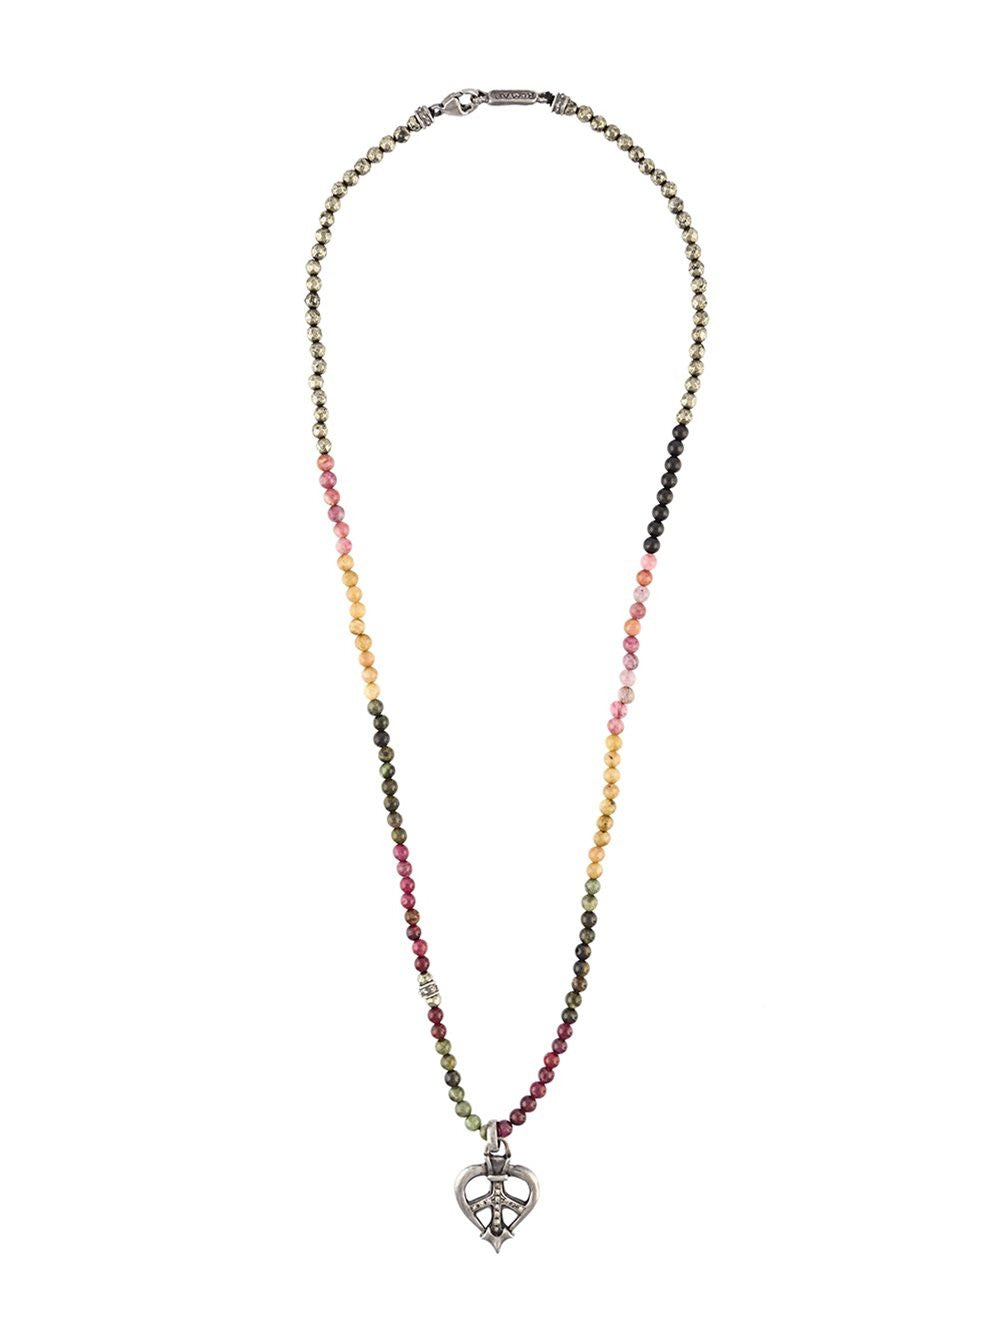 Turmaline Diamond Peace Sign Necklace | 9- 1101-479-SS/DIA-TURMALINE